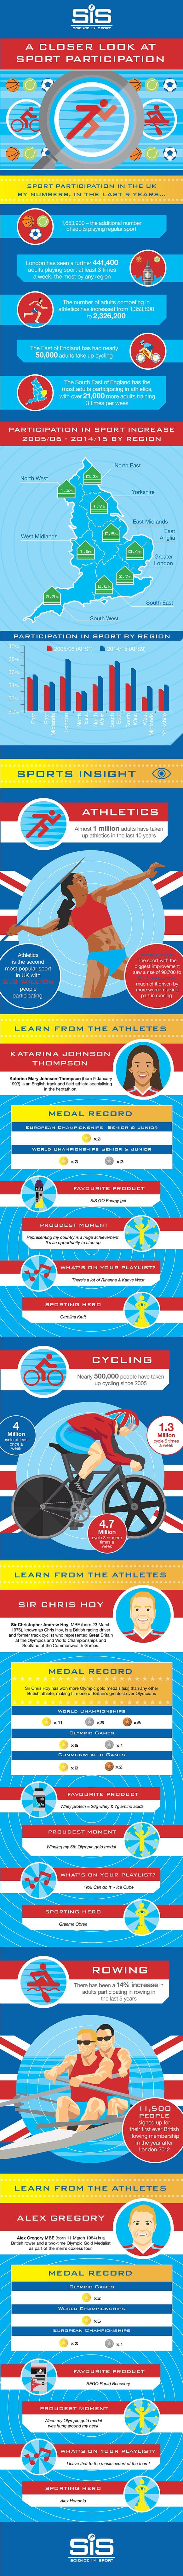 A Closer Look At Sport Participation Infographic